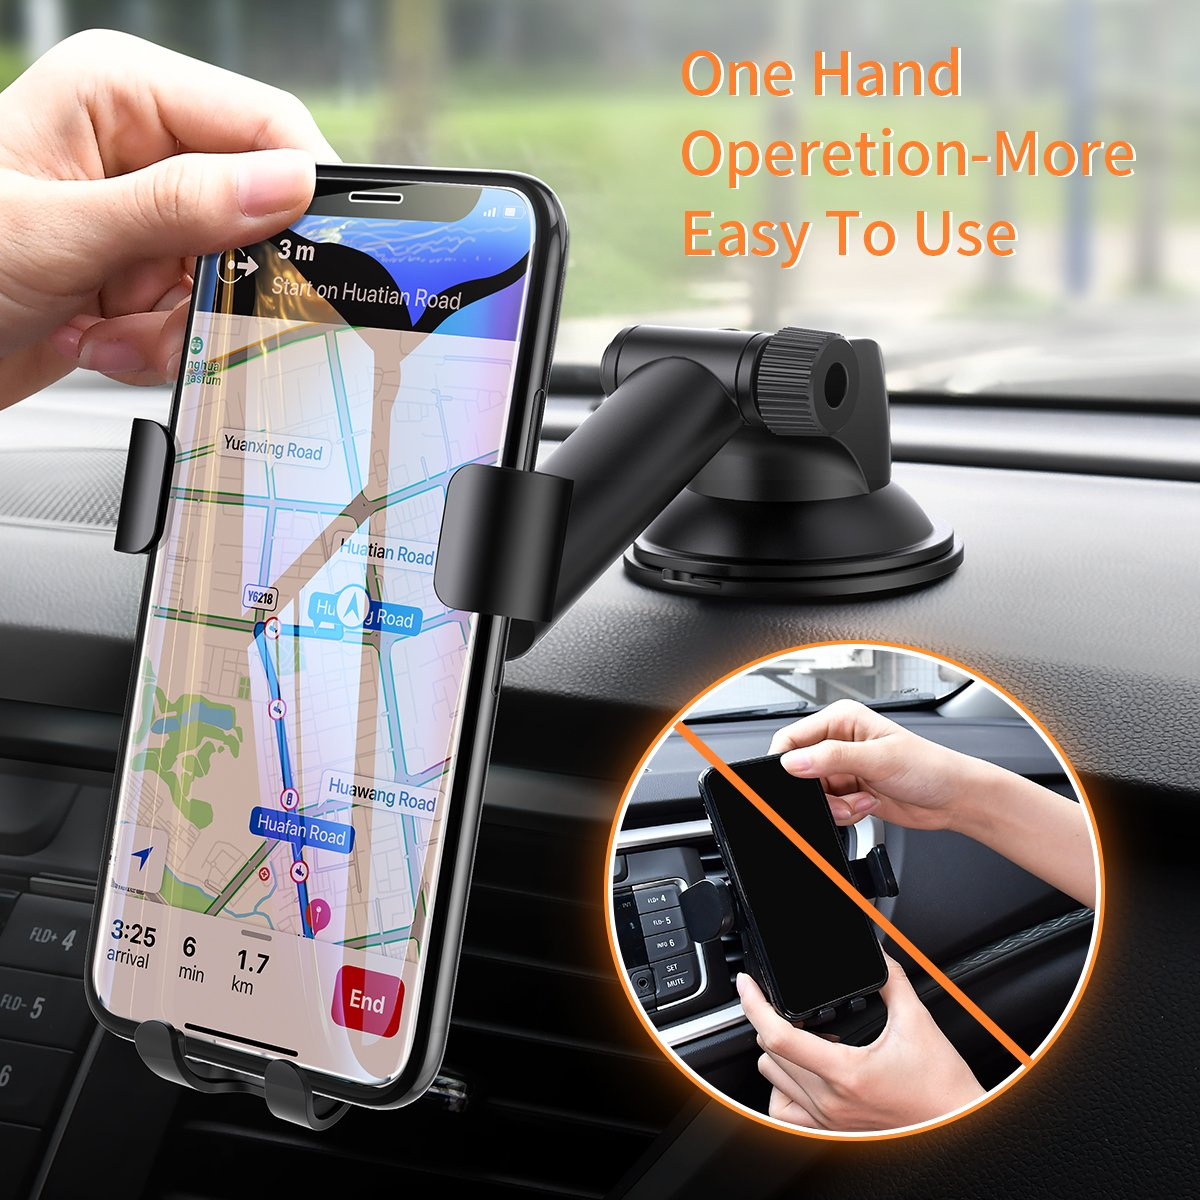 Cell Phone Holder Car, Universal Dashboard Cell Phone Holder Gravity Auto-Clamping Car Cradle Mount Adjustable Car Holder Phone X/ 8/7/ 6s/ Plus, Galaxy S9/ S8/ S7 Edge - Ainope by Ainope (Image #5)